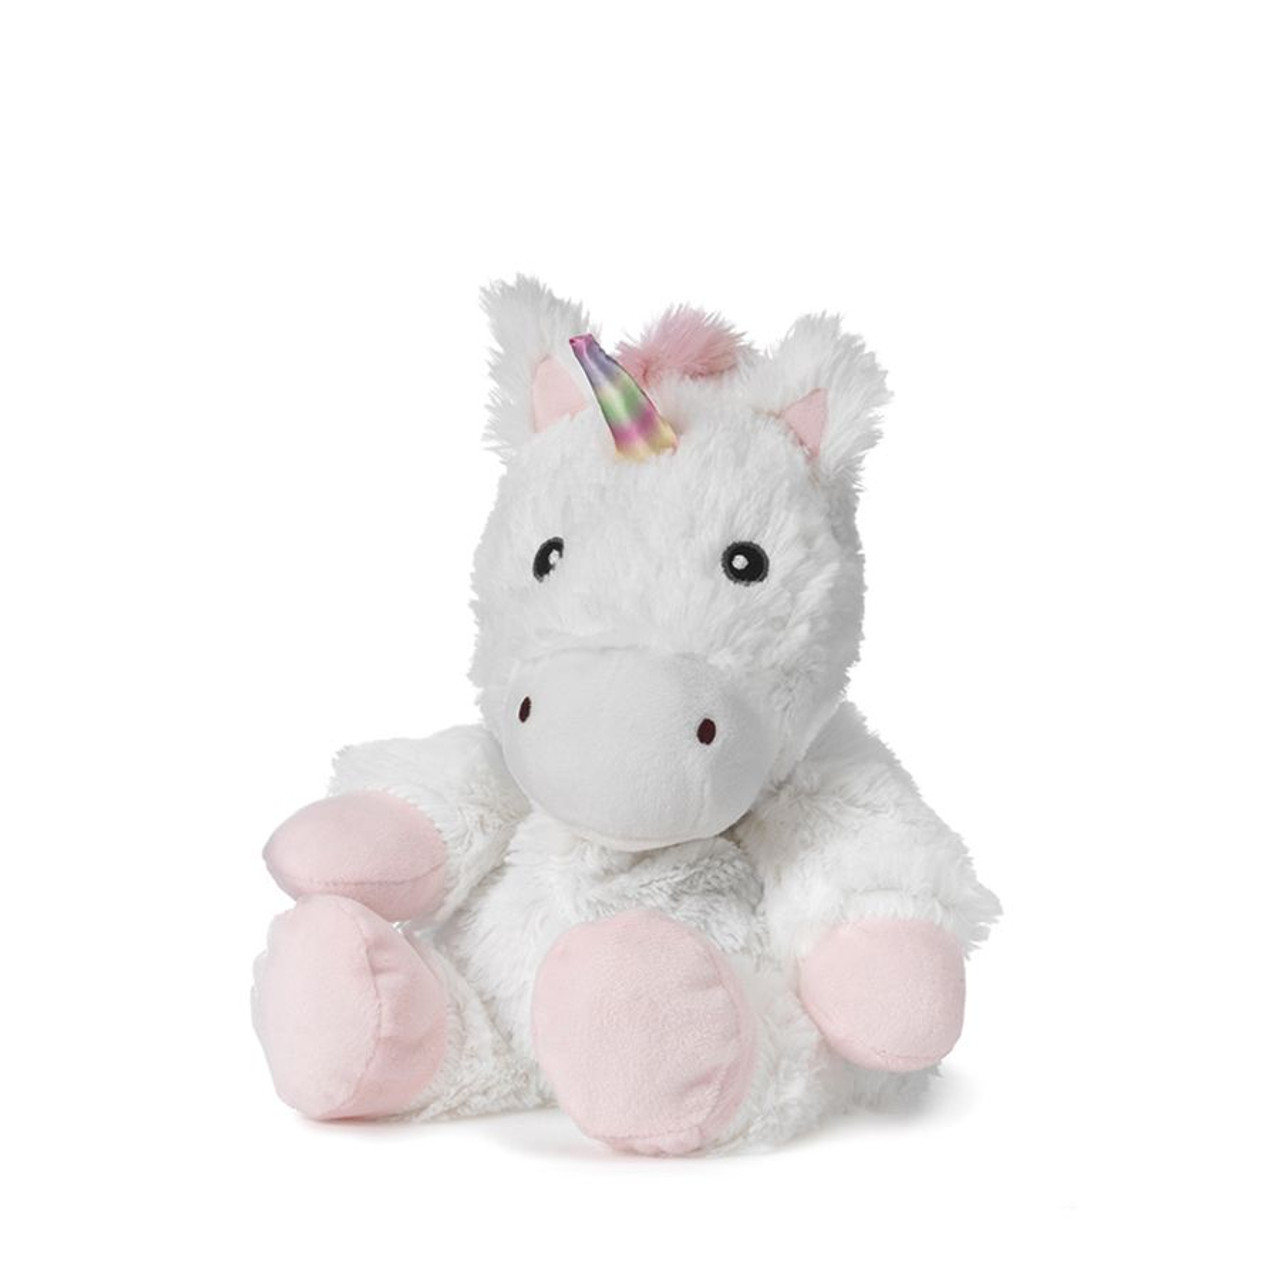 """All age groupscan have hours of funusingtheirWarmies®Cozy Plush White Unicorn,knowing that they can be warm all night long.  The 13"""" White Unicorn is fully microwavable yet entirely safe to hold tight after taking a bath, putting on PJs, and heading up the stairs to bed."""